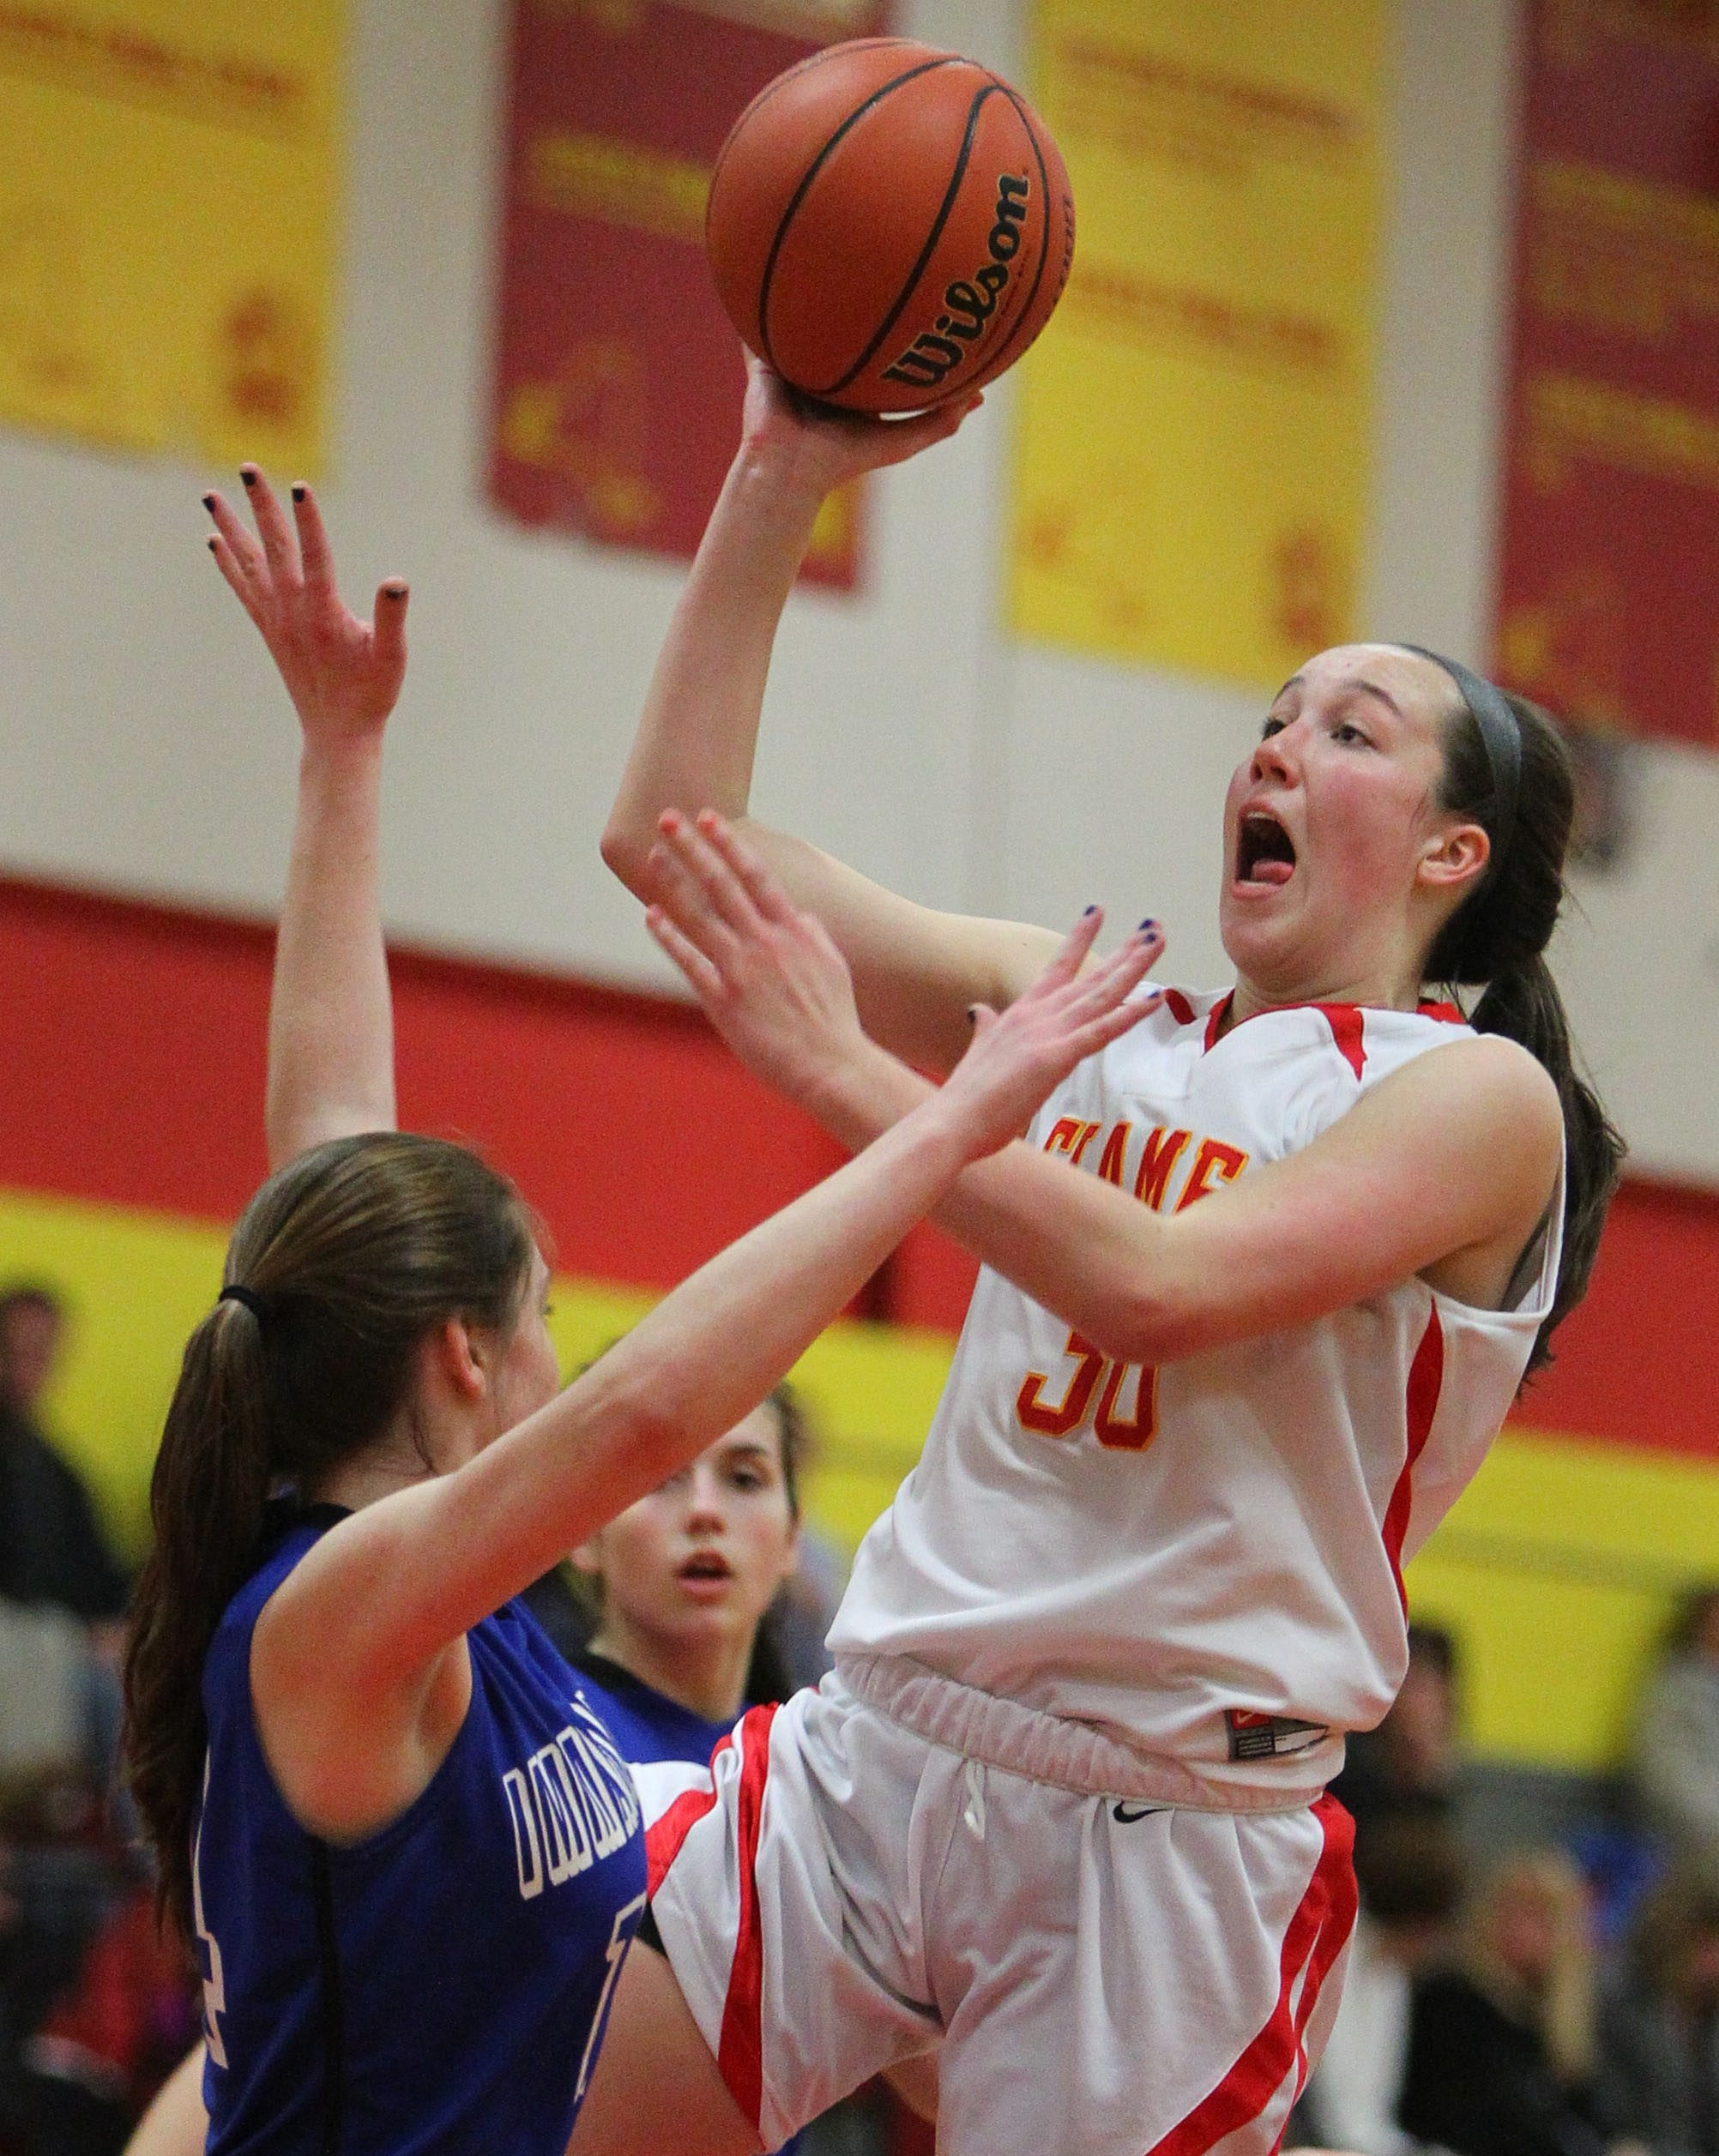 Kenzie Laughlin of Williamsville East drives to the basket against Immaculata's Grace Coughlin in the their game Tuesday night won by the Flames, 40-25.